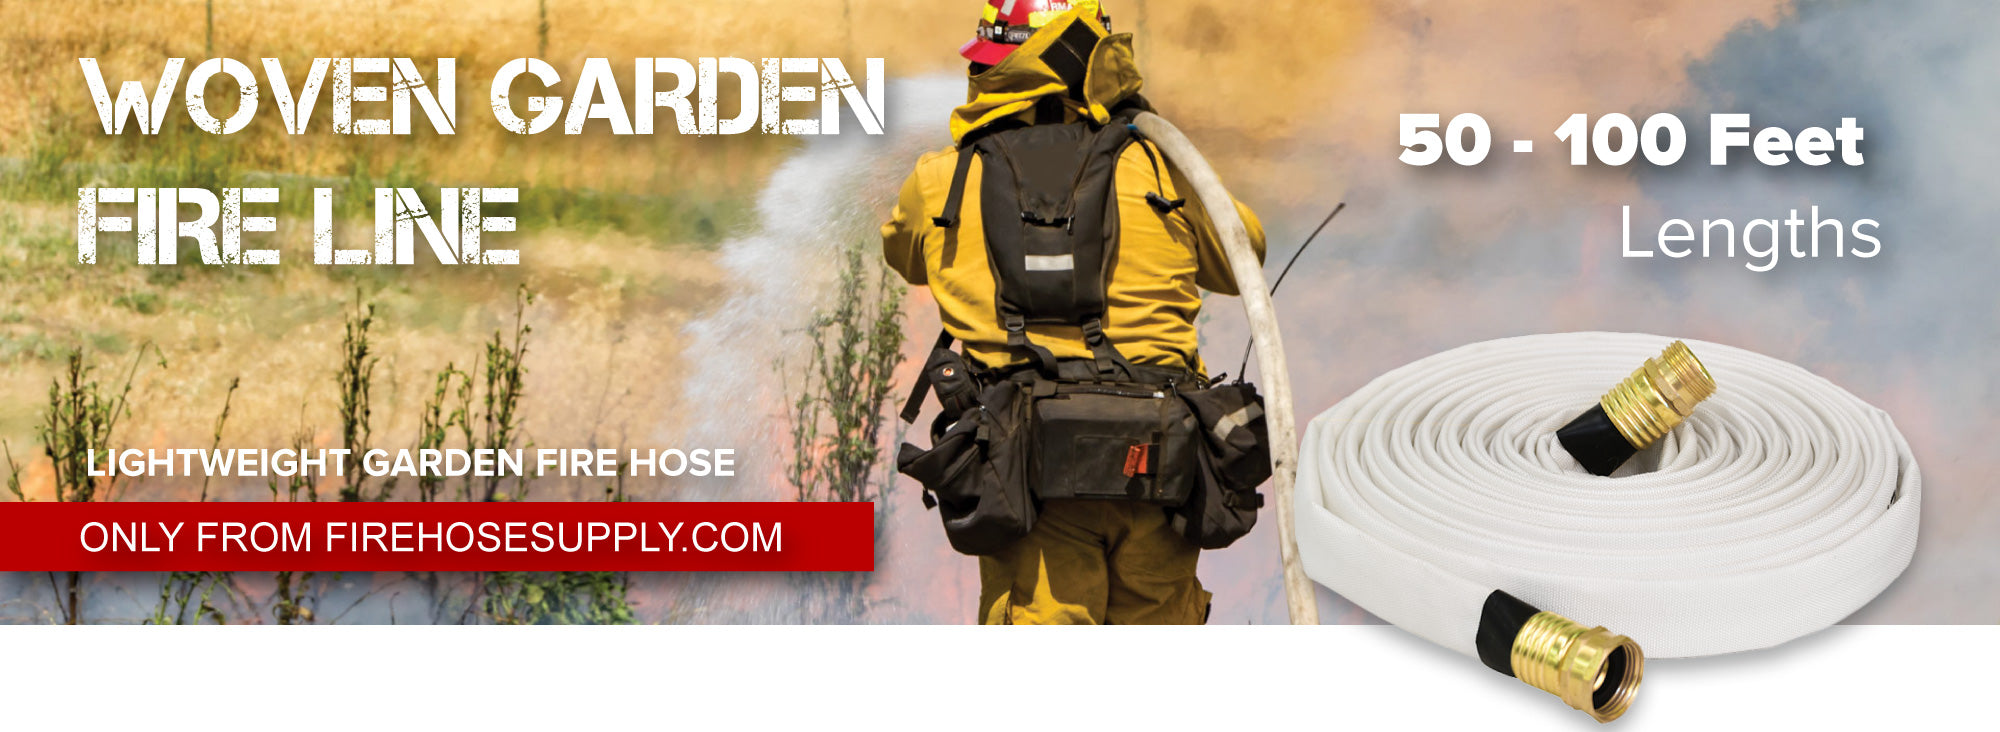 White Garden Fire Hose